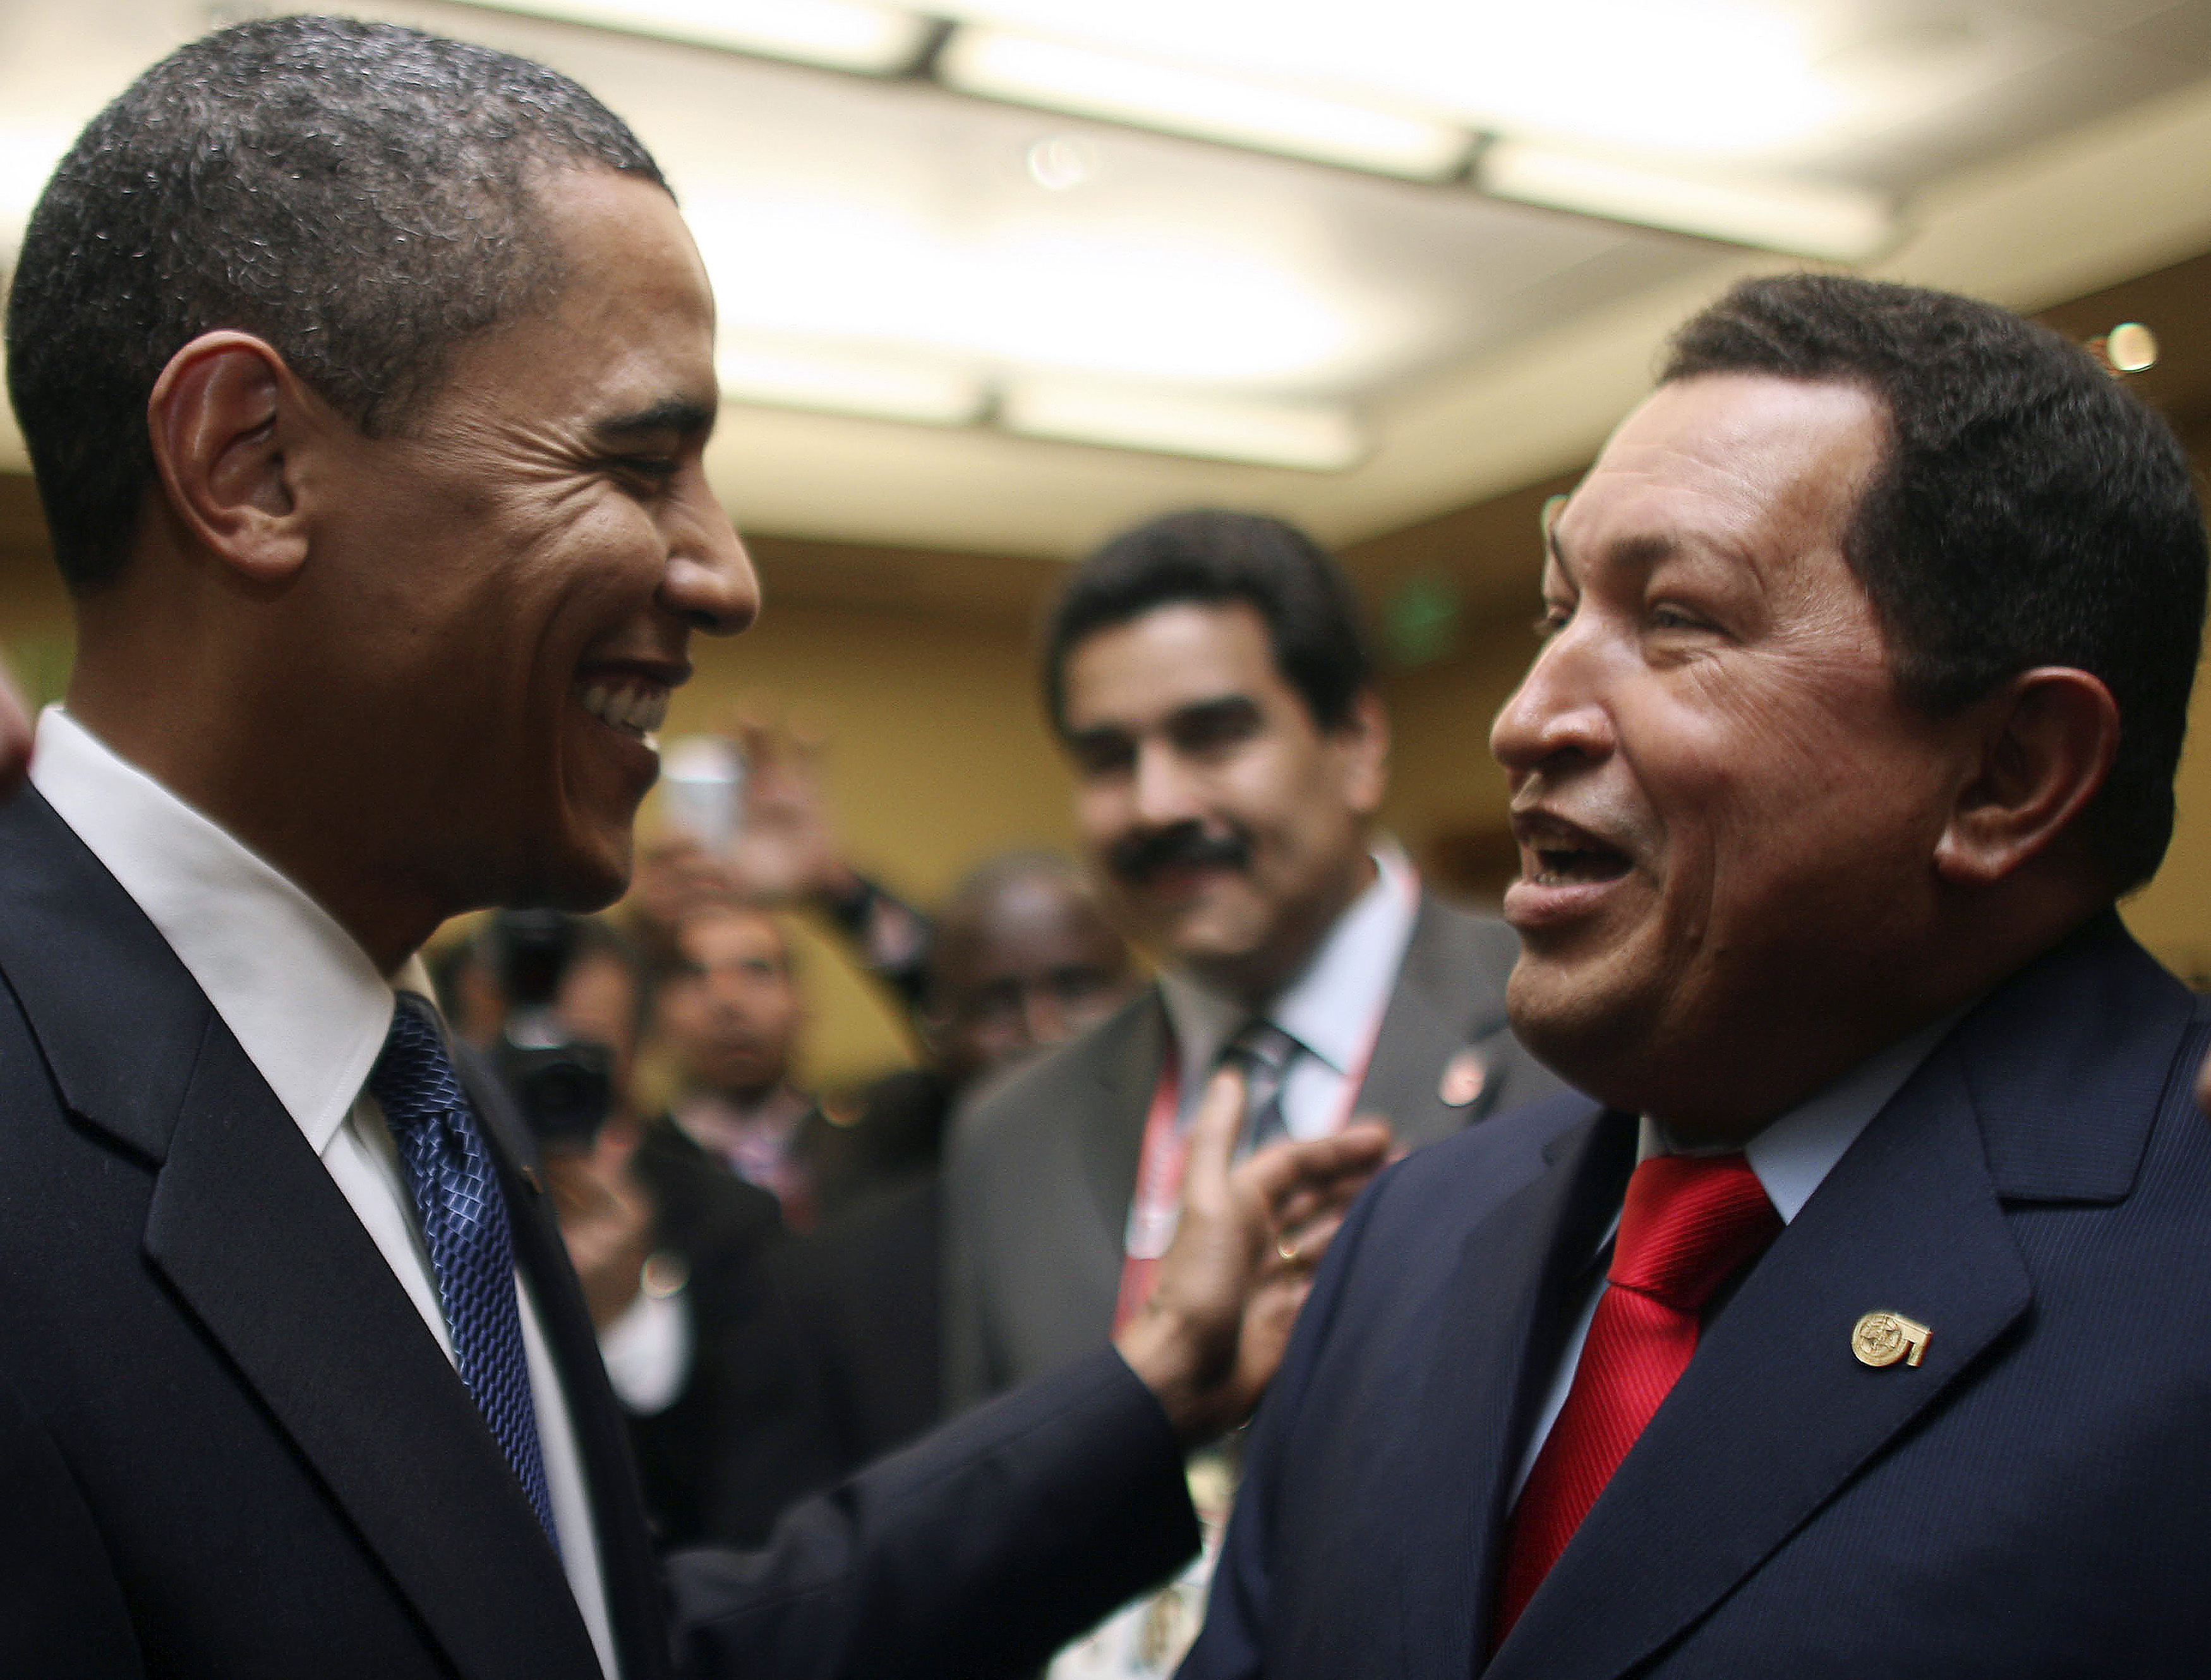 U.S. President Barack Obama greets his Venezuela counterpart Hugo Chavez before the opening ceremony of the 5th Summit of the Americas in Port of Spain April 17, 2009. ©REUTERS/Miraflores Palace/Handout